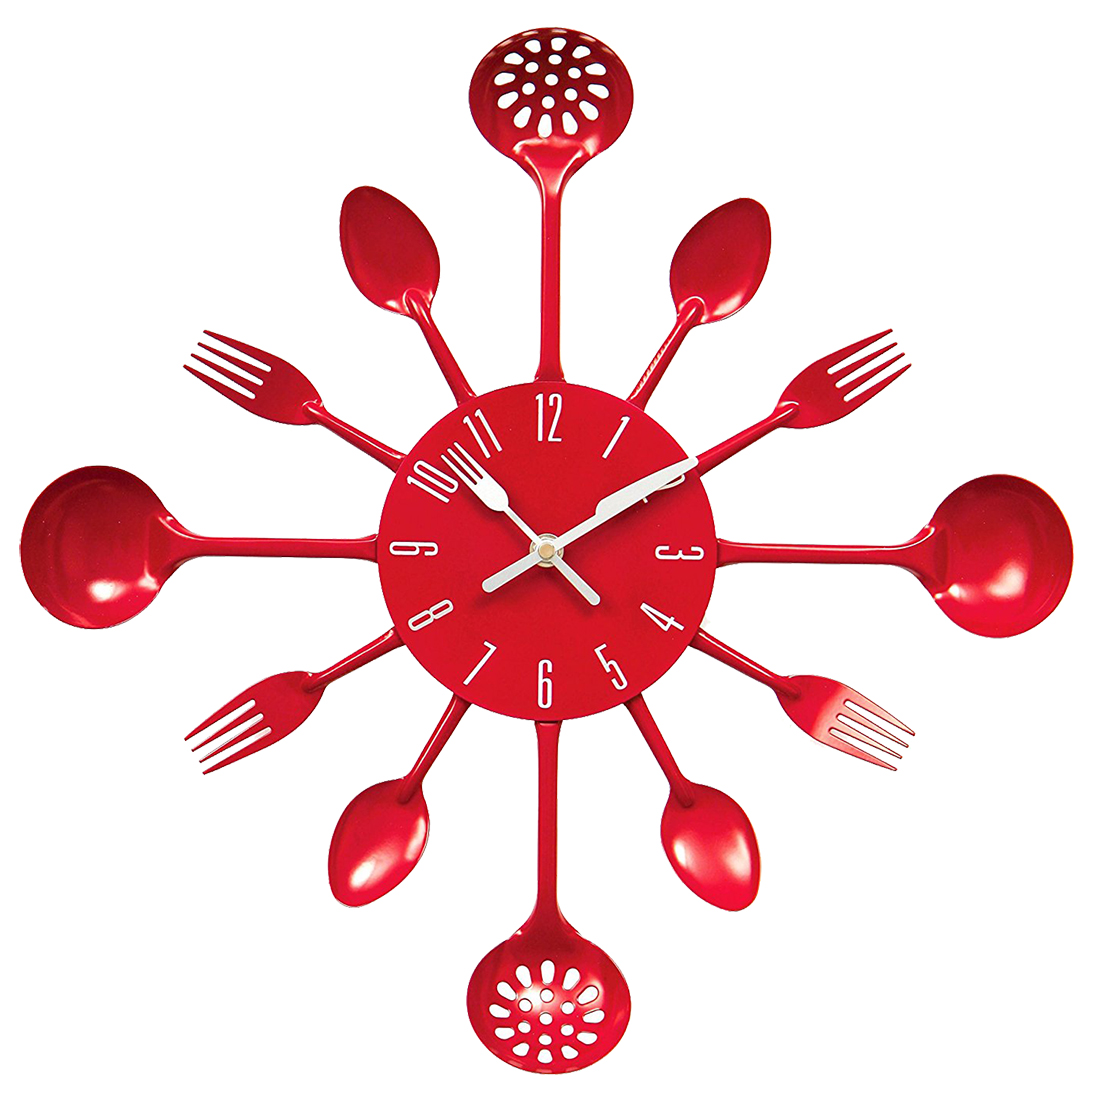 Cutlery Metal Kitchen Wall Clock Spoon Fork Creative Quartz Wall Mounted Clocks Modern Design Decorative Horloge Murale 9 Colors